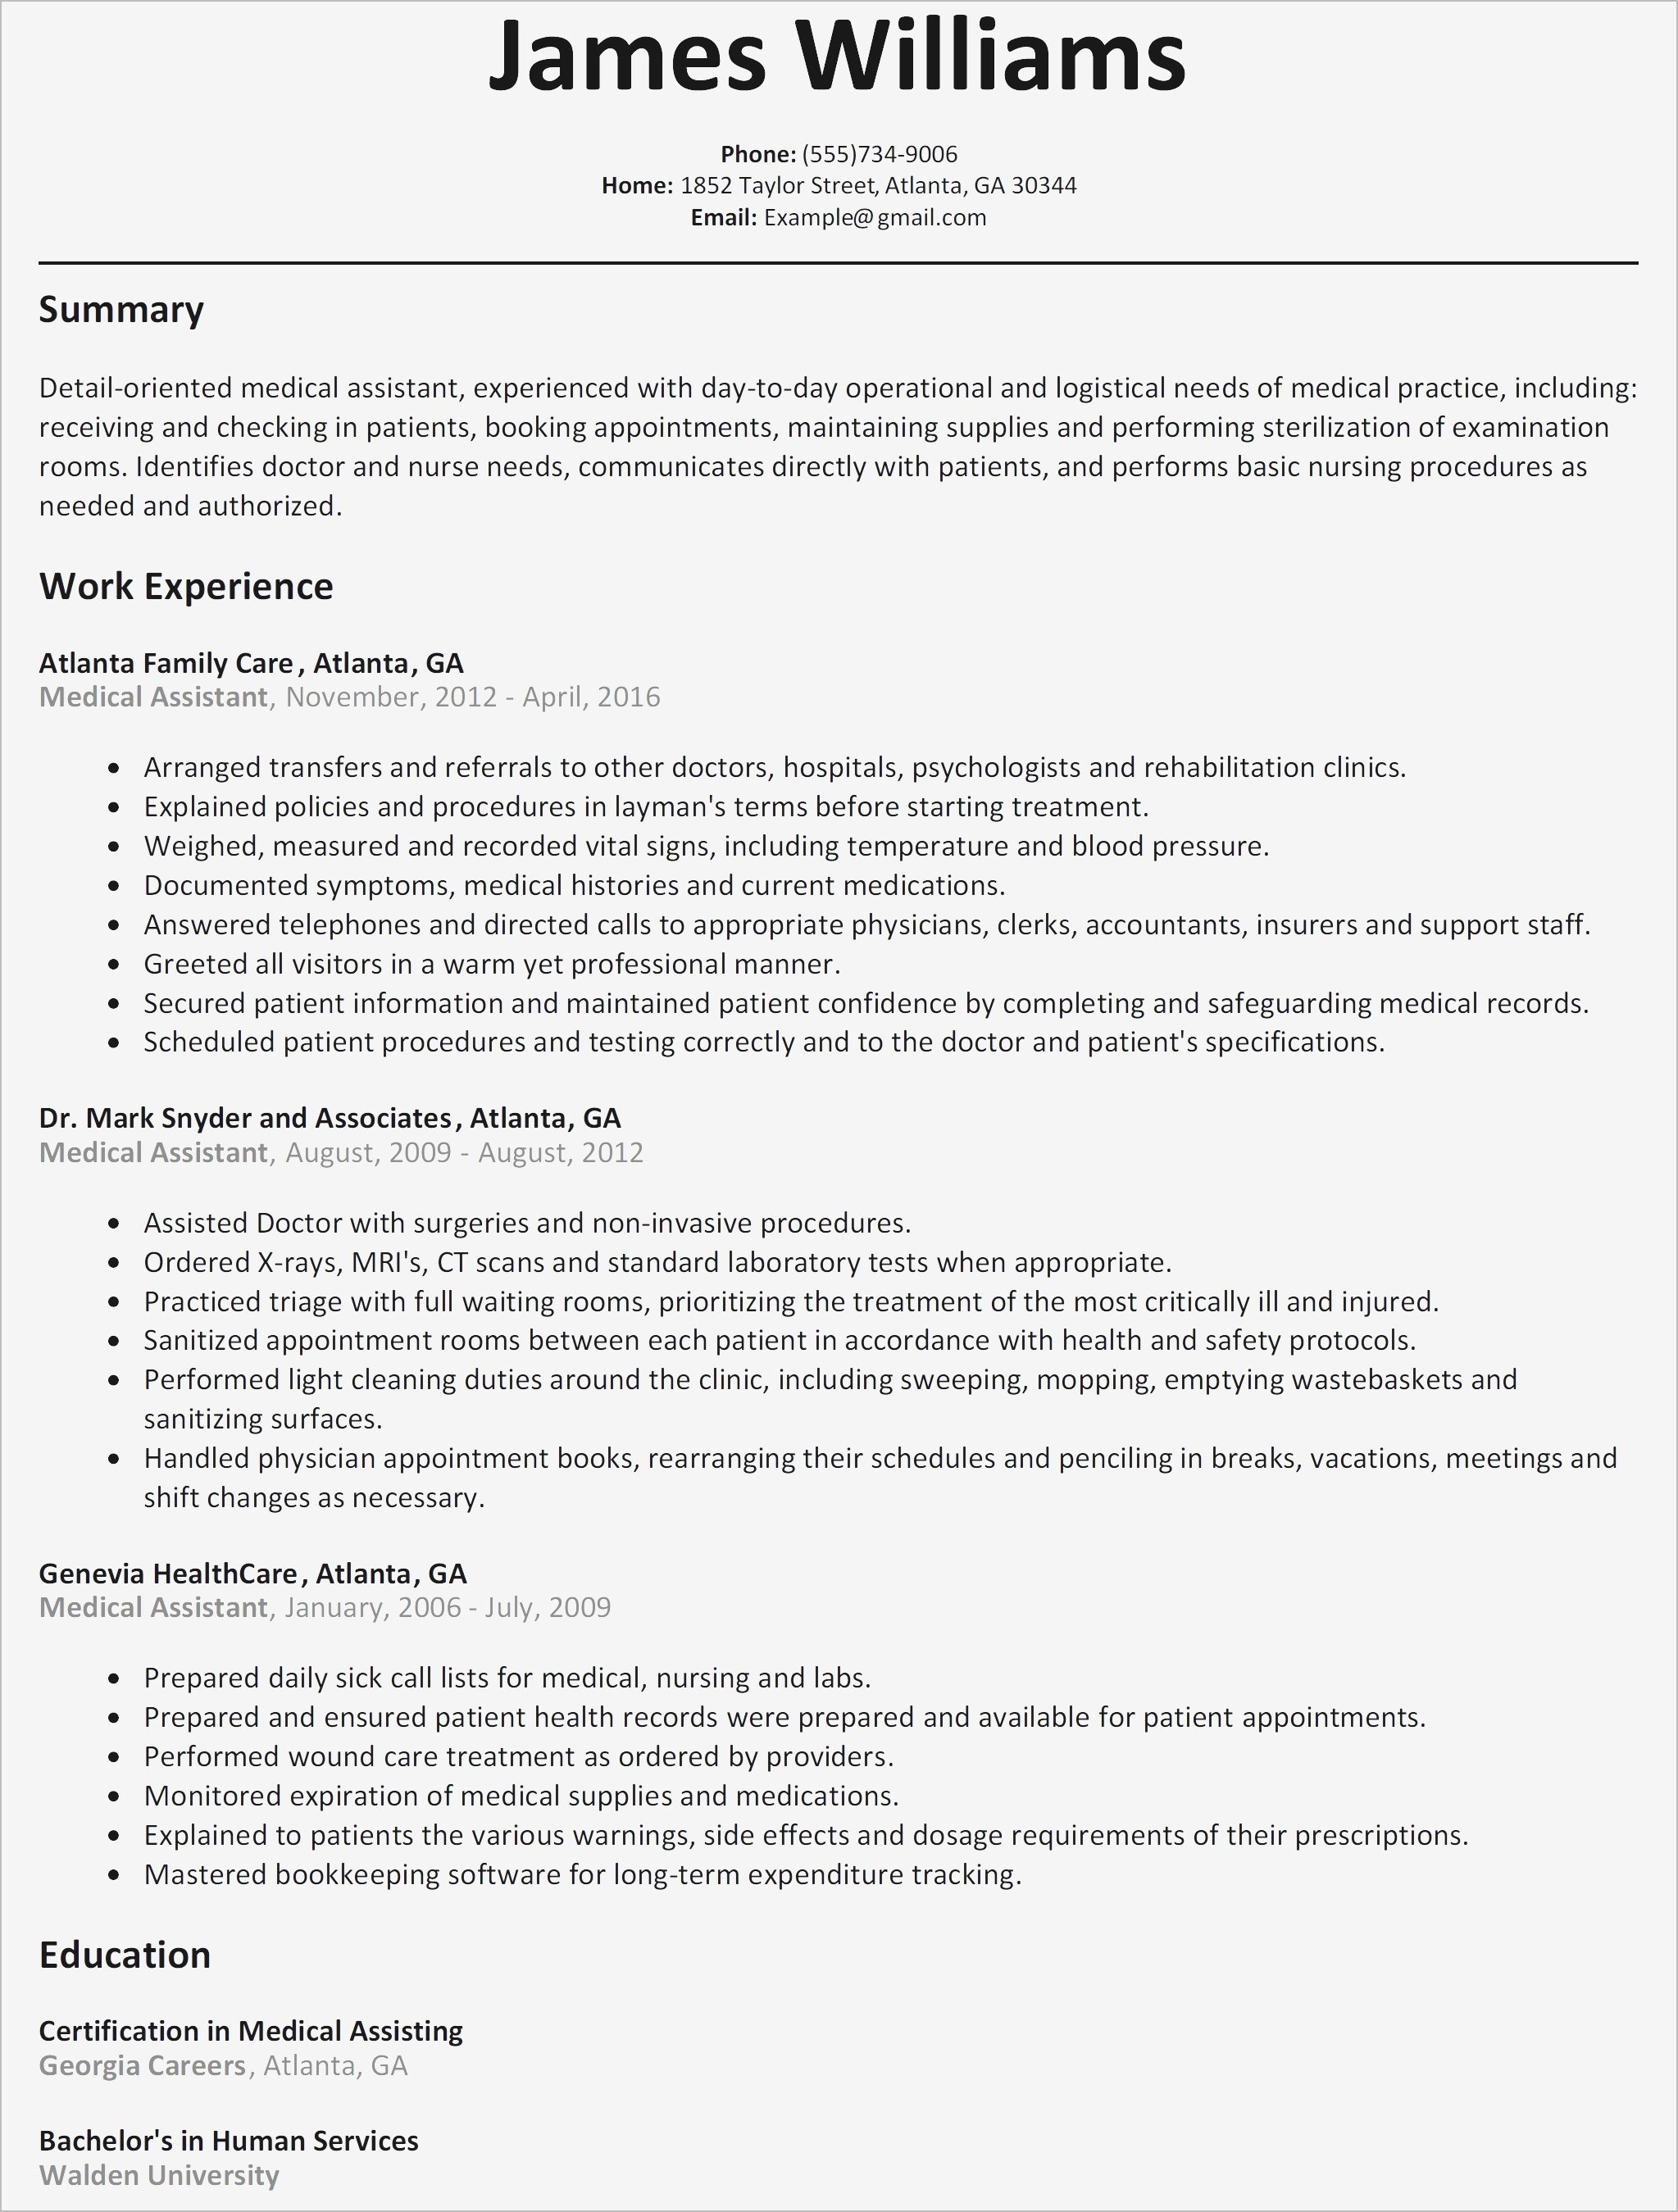 Nursing Resume Template Free Download - Inspirational Free Resumes Templates to Download